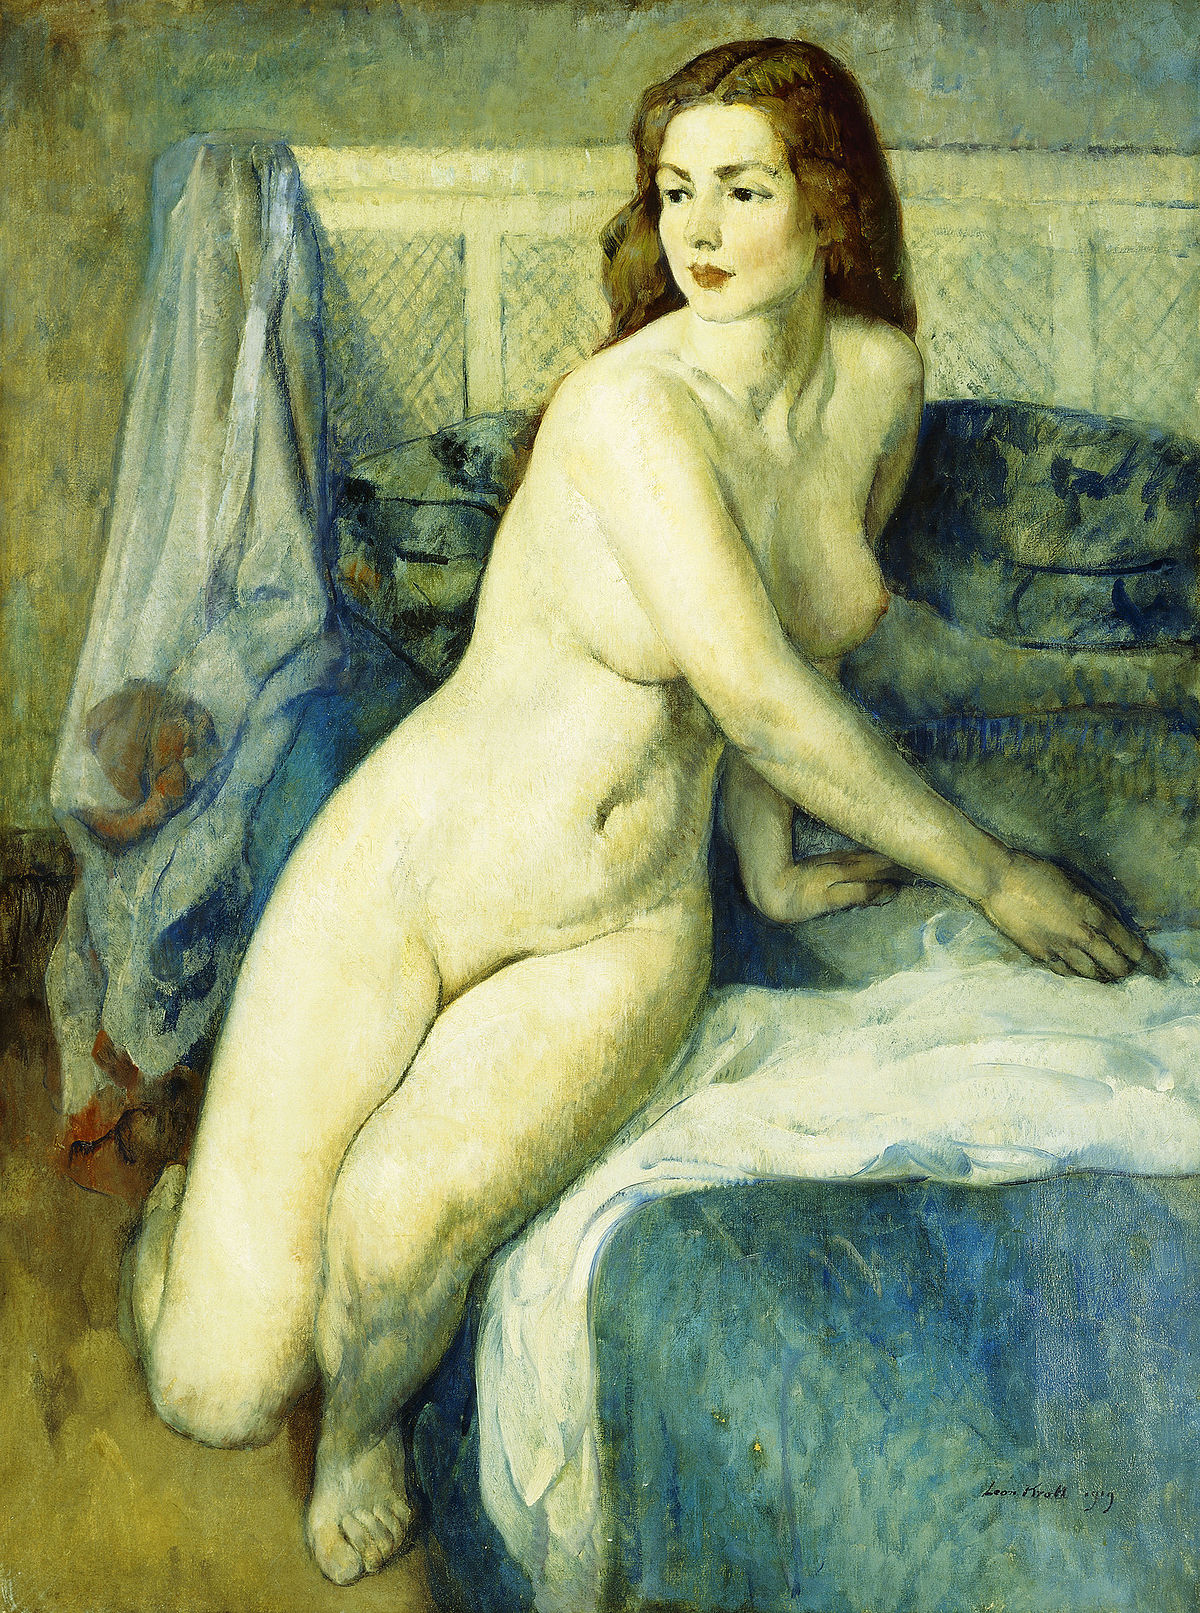 http://upload.wikimedia.org/wikipedia/commons/thumb/2/29/Leon_Kroll_-_Nude_in_a_Blue_Interior%2C_1919.jpg/1200px-Leon_Kroll_-_Nude_in_a_Blue_Interior%2C_1919.jpg